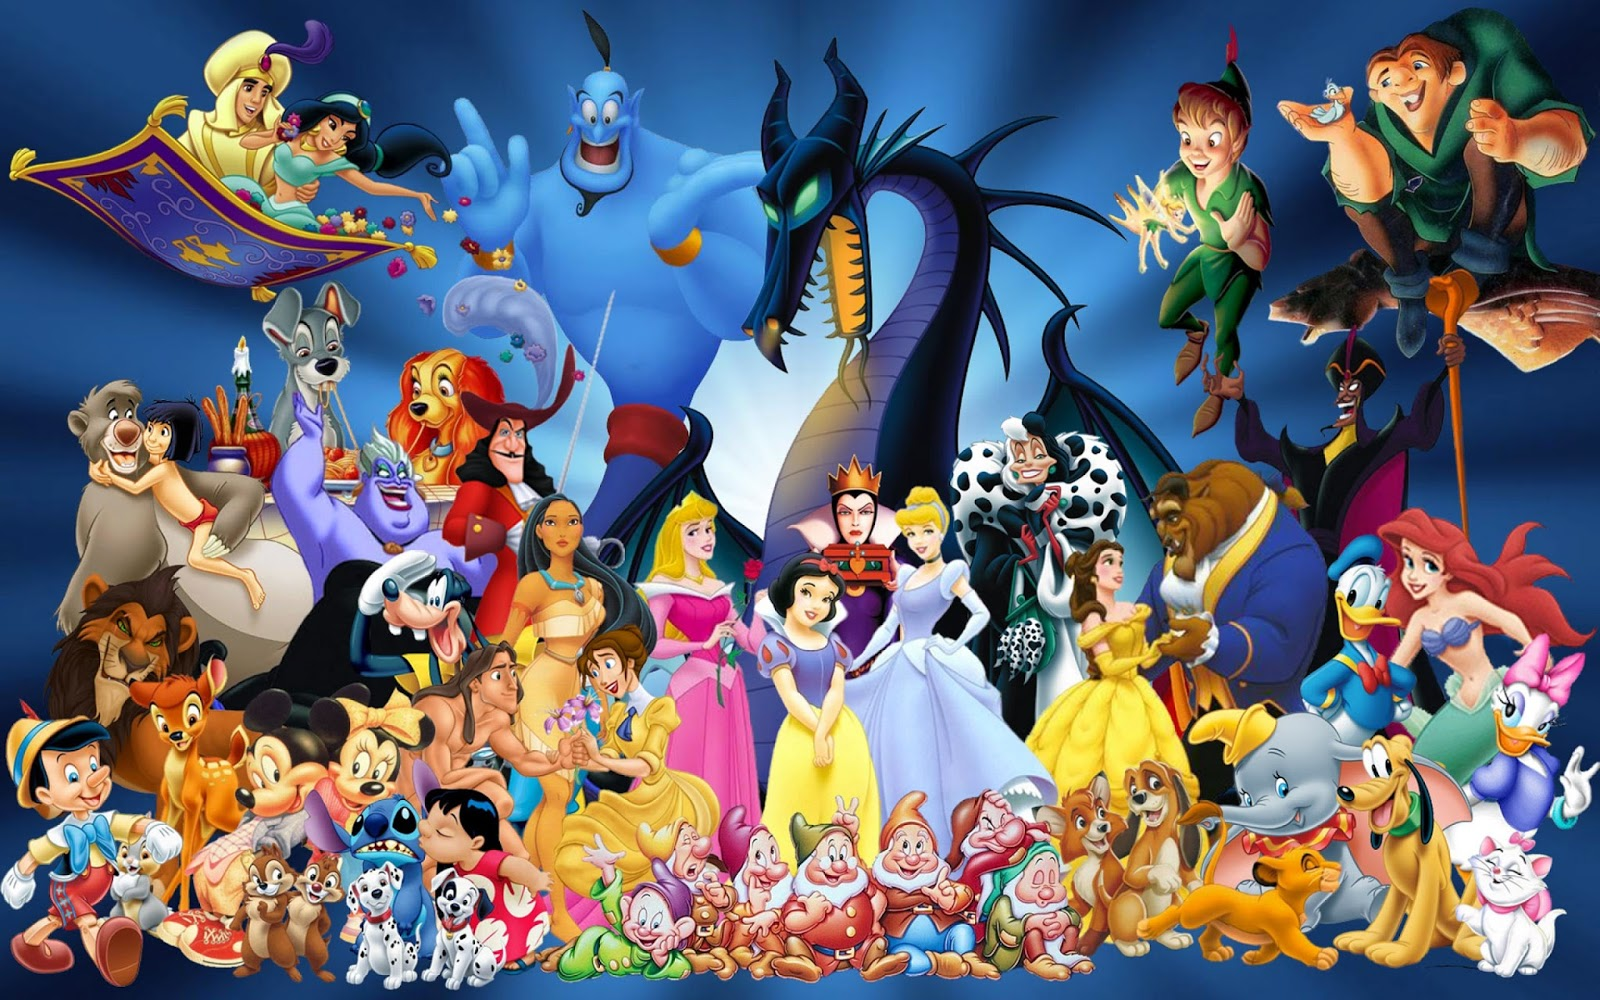 Disney Character Wallpapers -  All Disney Characters